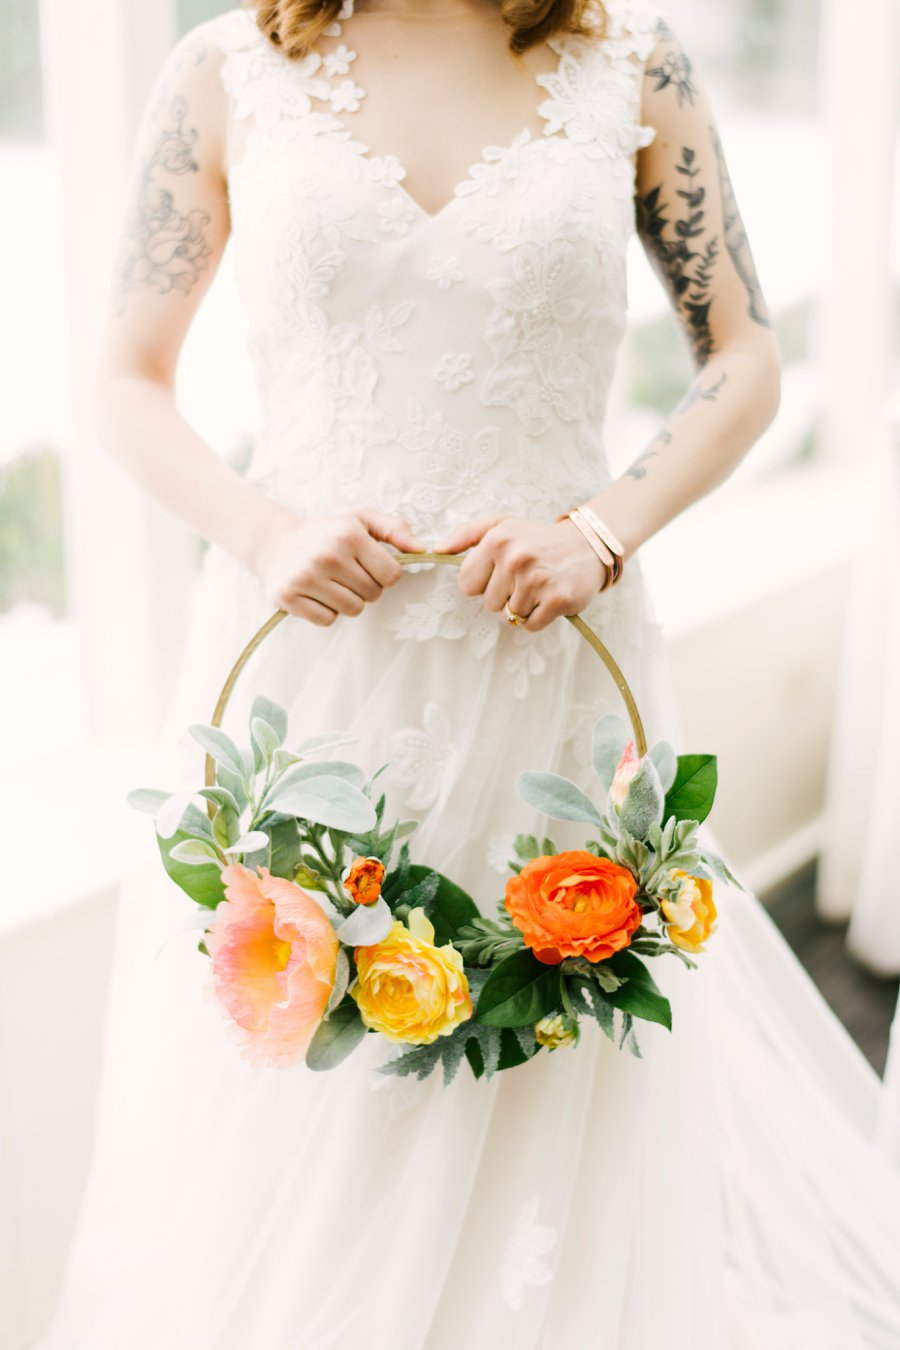 Coppola Creative Blog Early Spring Wedding3.jpg